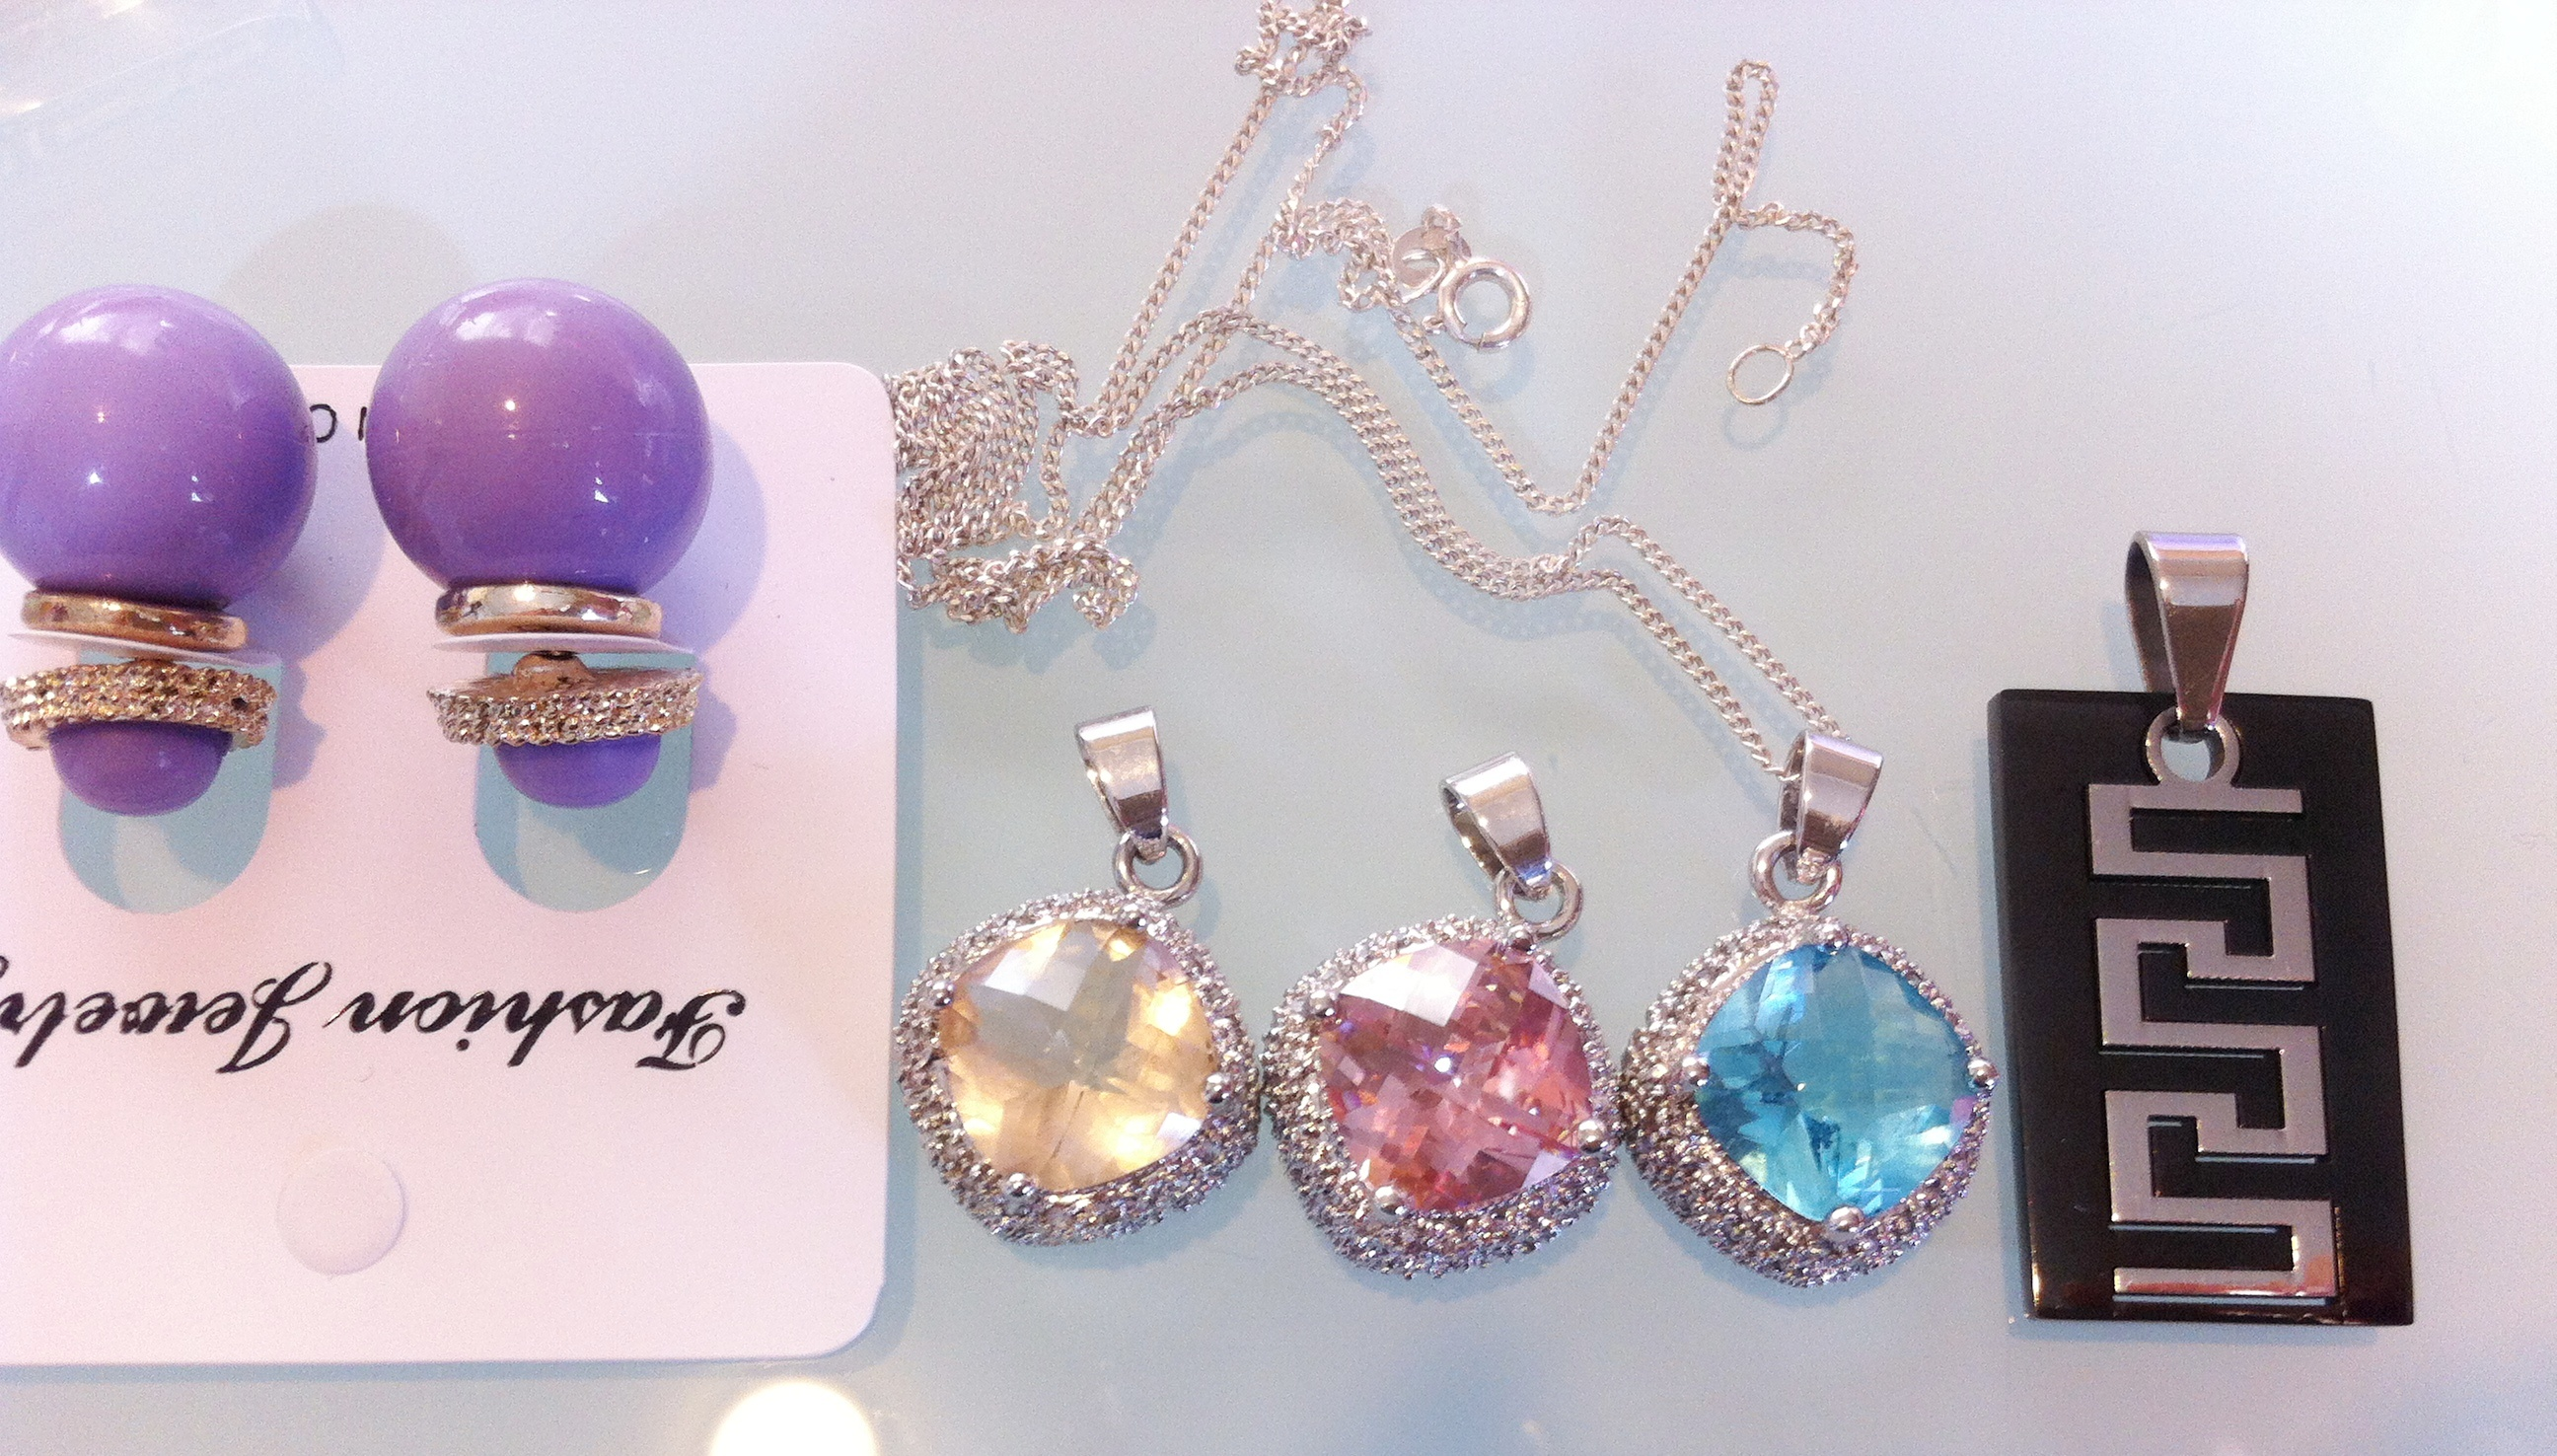 NEW Pendants Pink-Blue-Beige- FREE Purple earrings